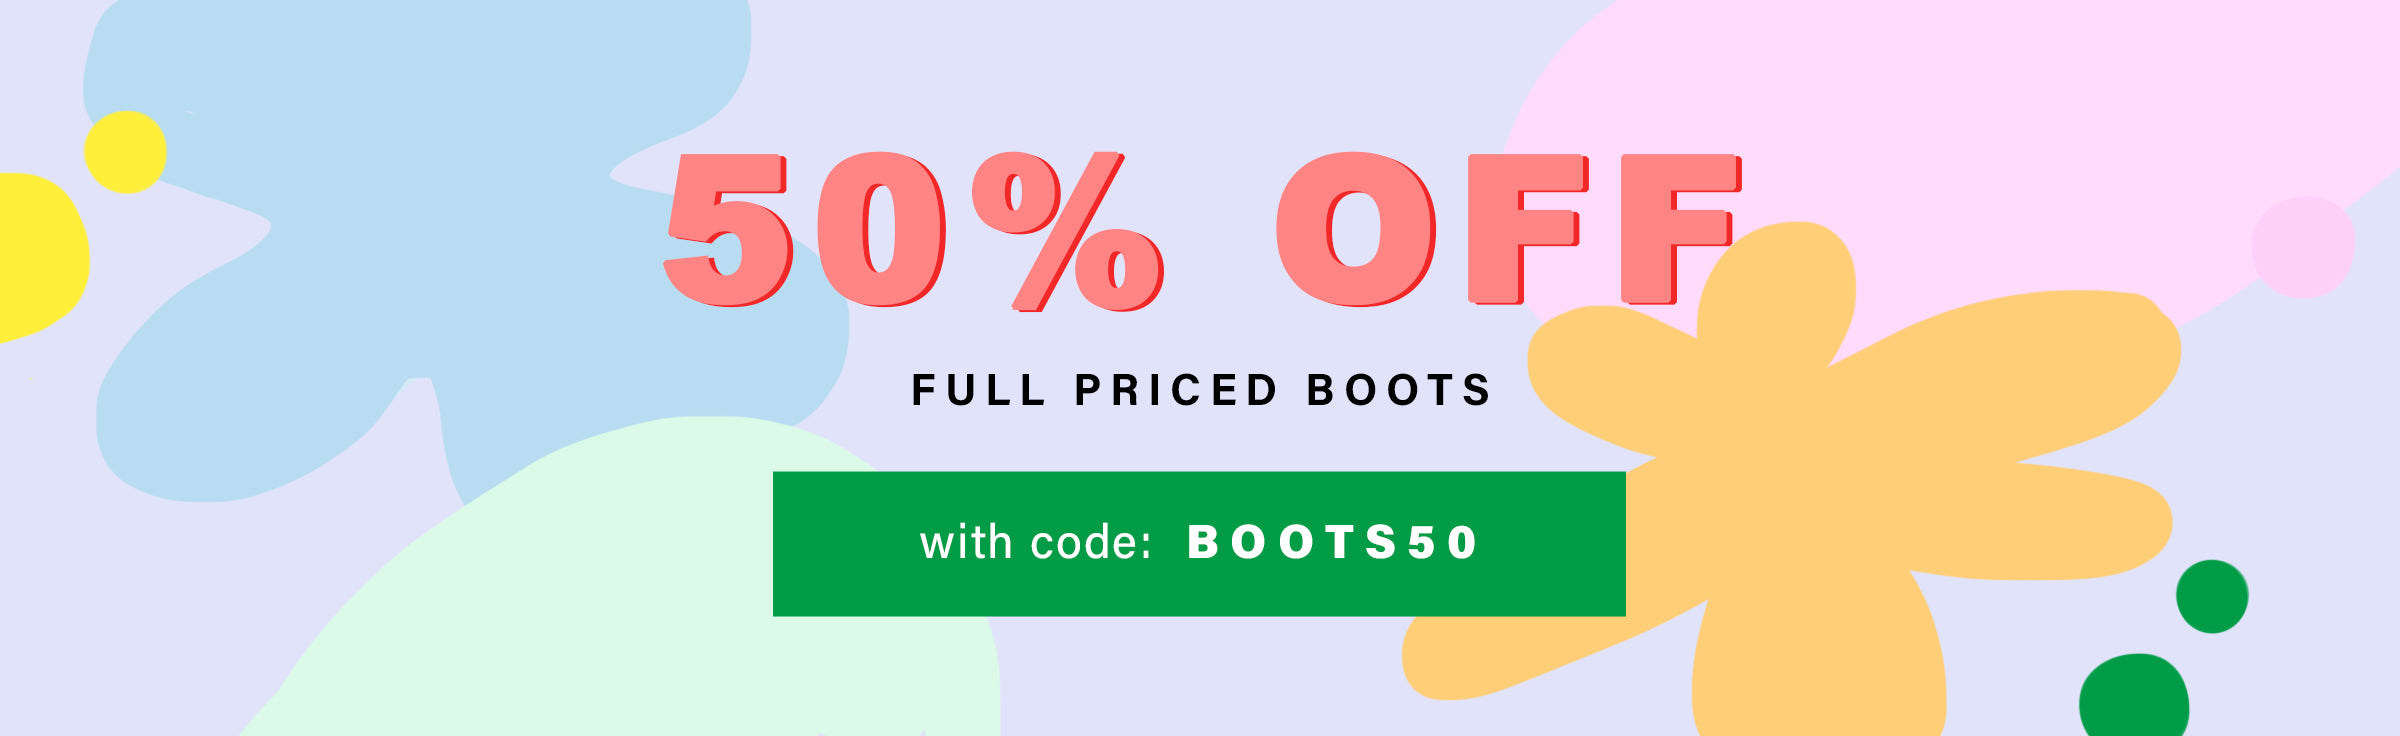 Boots 50